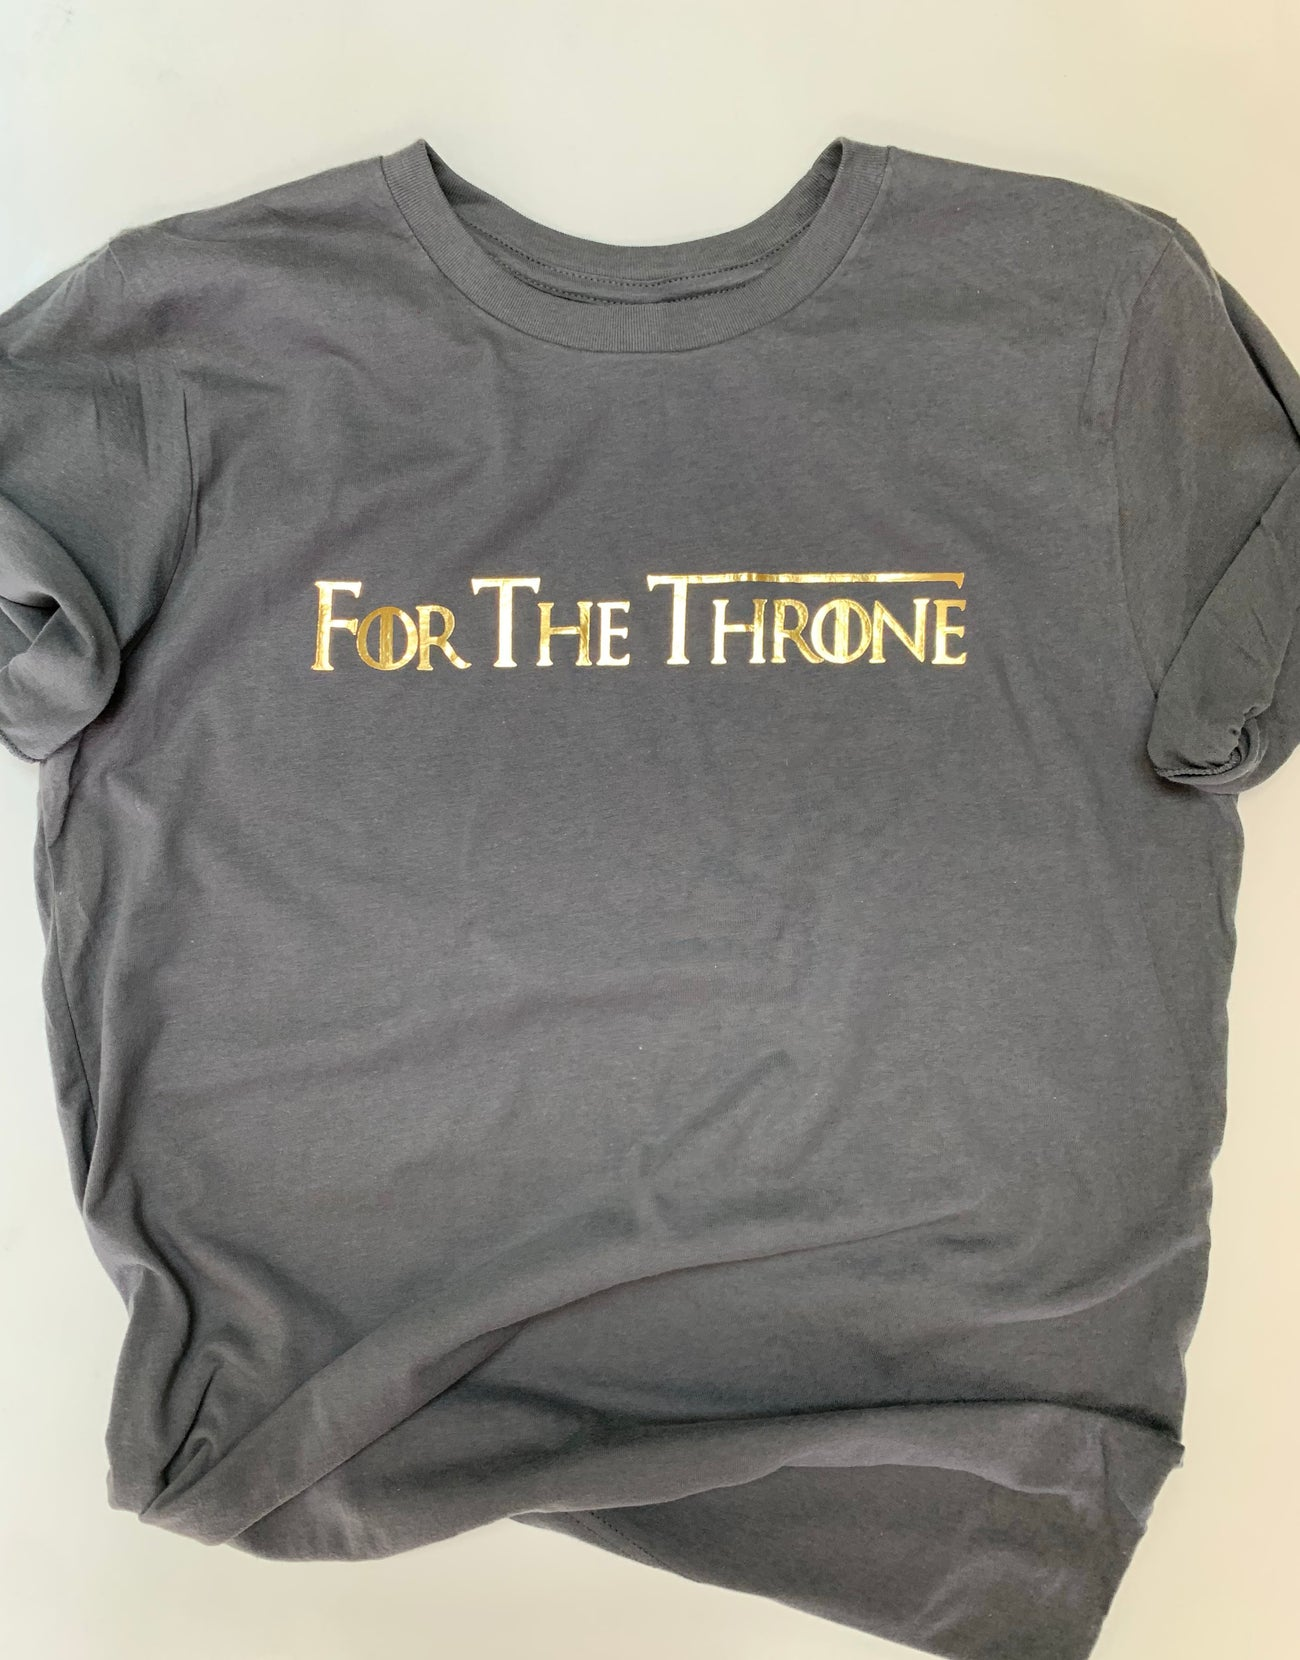 Game of Thrones Fan Shirt